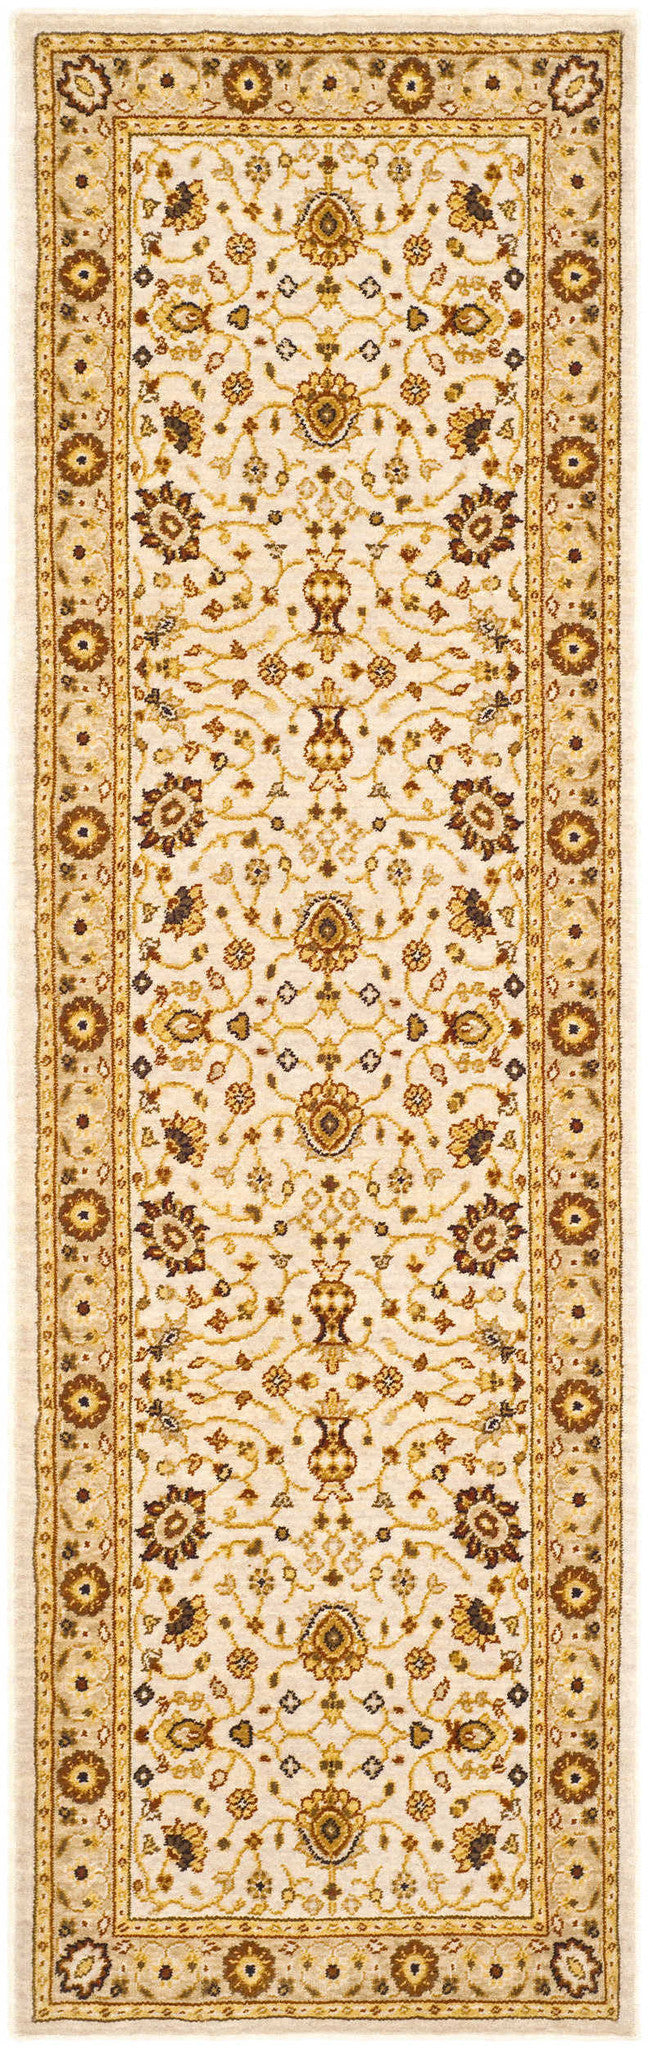 Safavieh Tuscany Tus303 Area Rug Rug Savings Quality Rugs